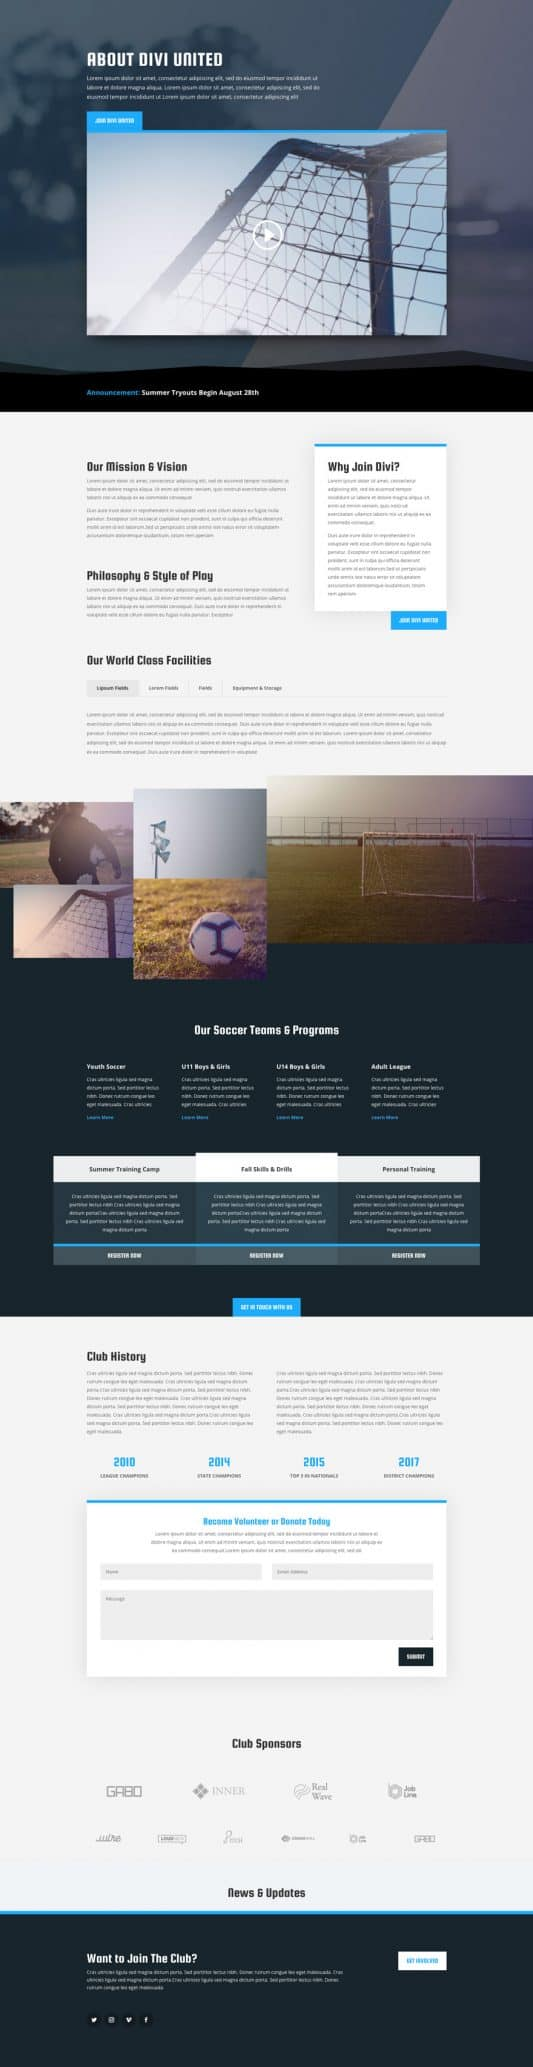 Soccer Club Web Design 1